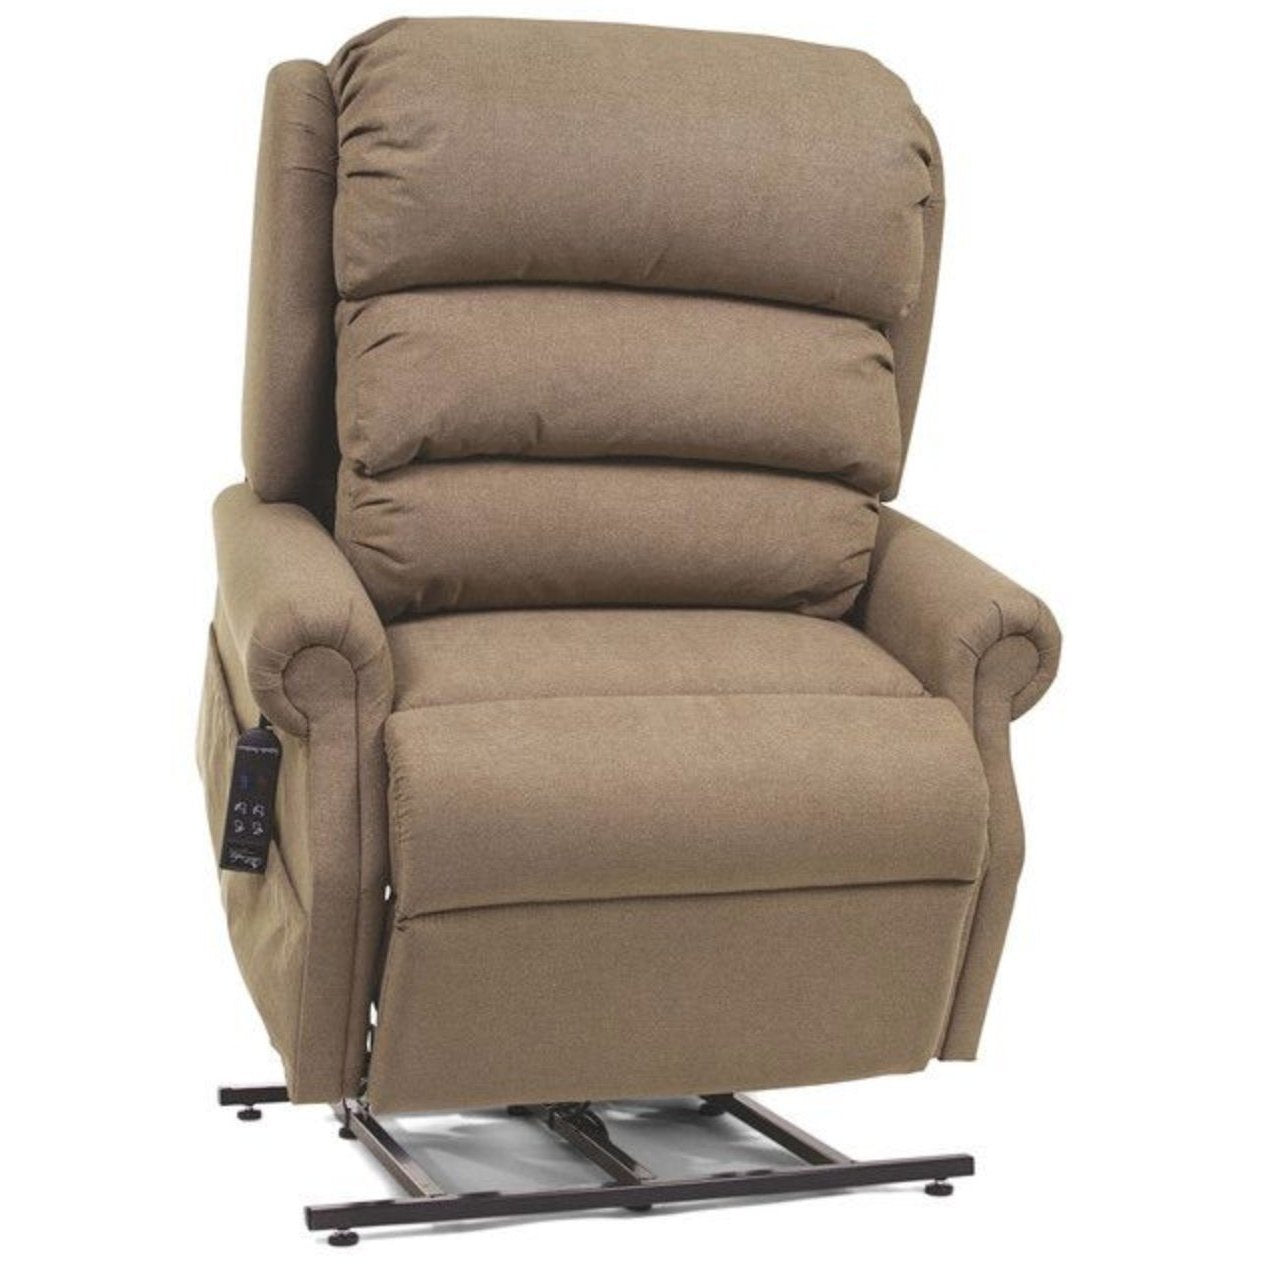 wicker comforter lift comfort chair ultra img by stella stellar power